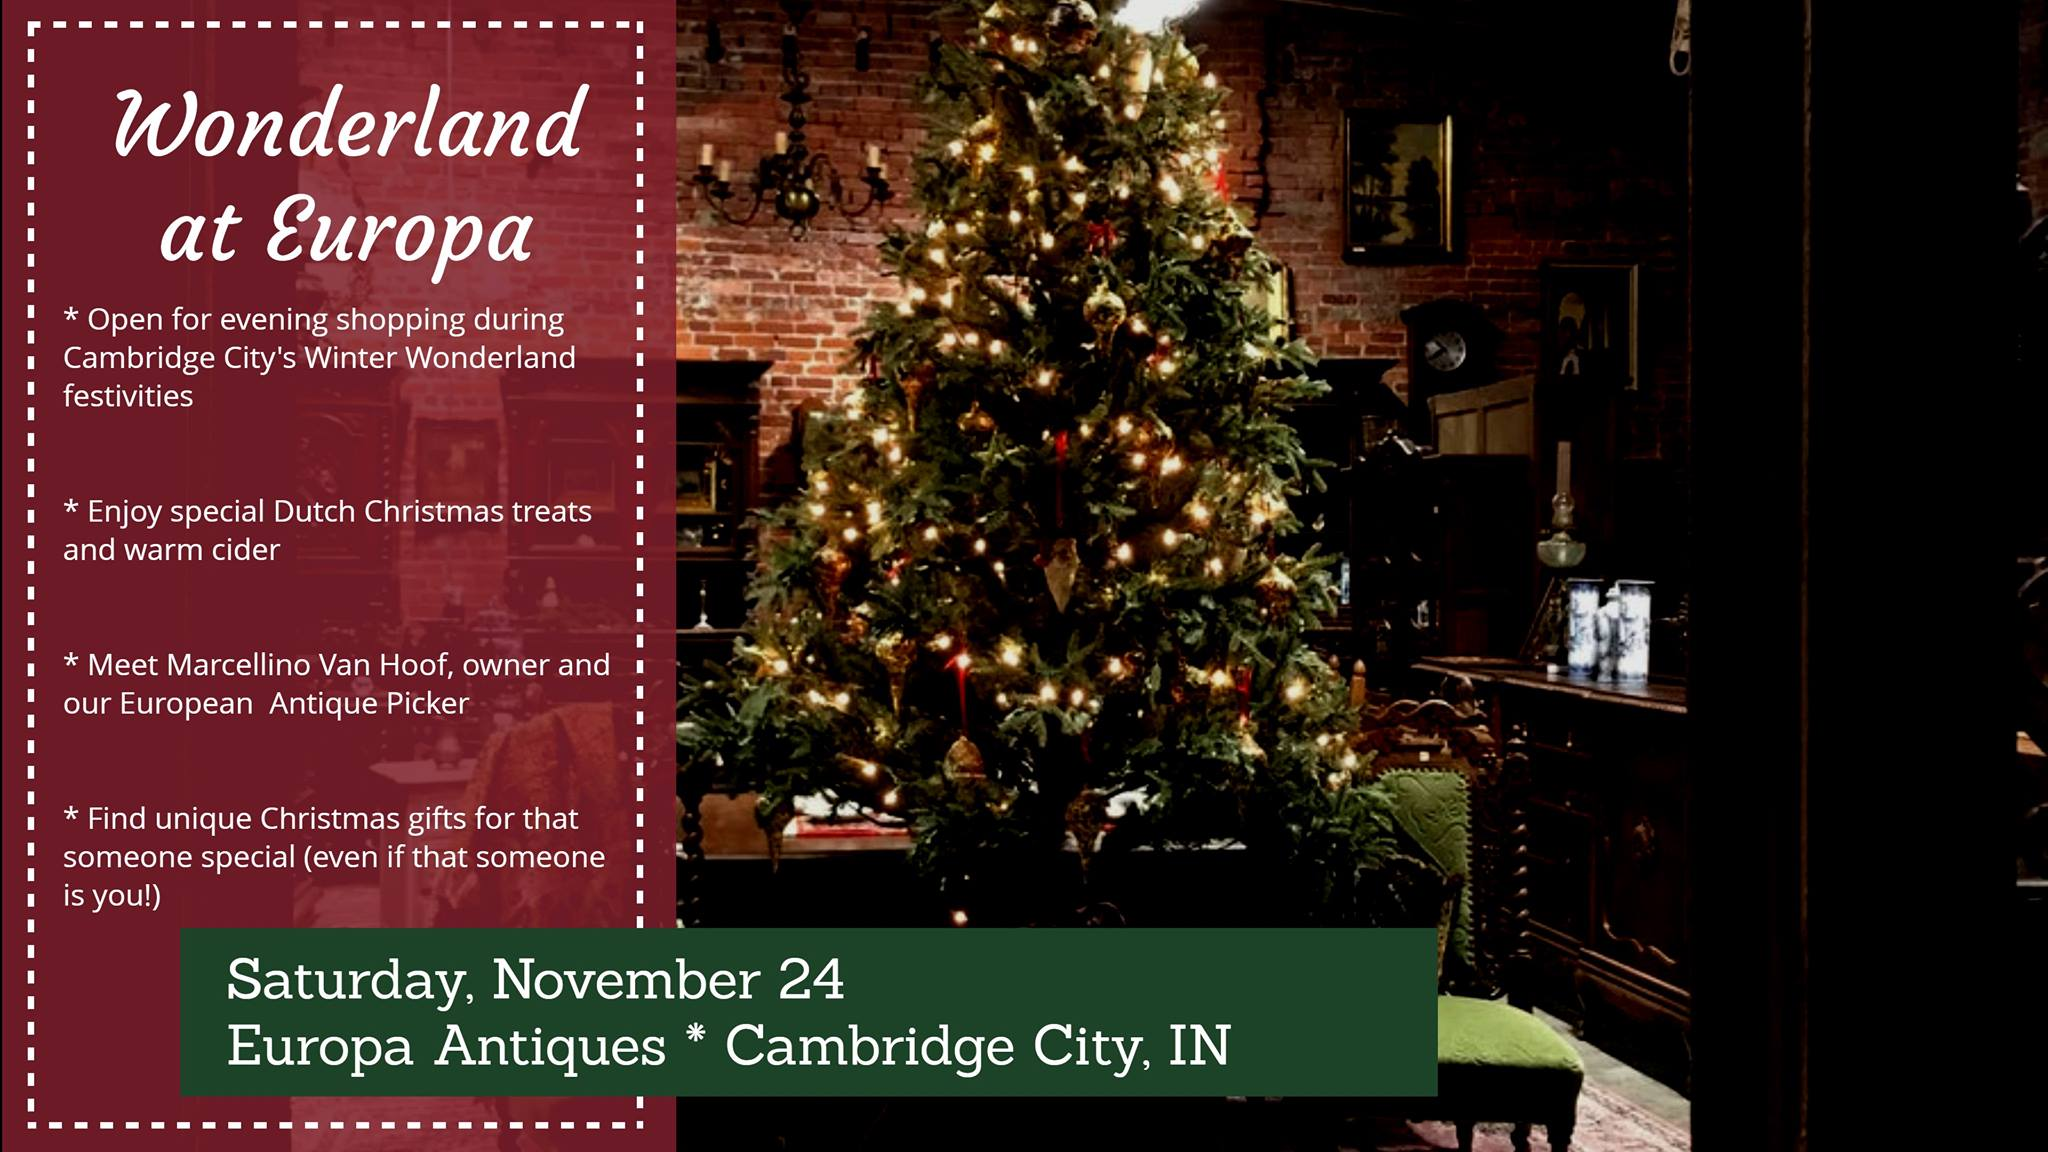 Winter Wonderland and Europa Antiques